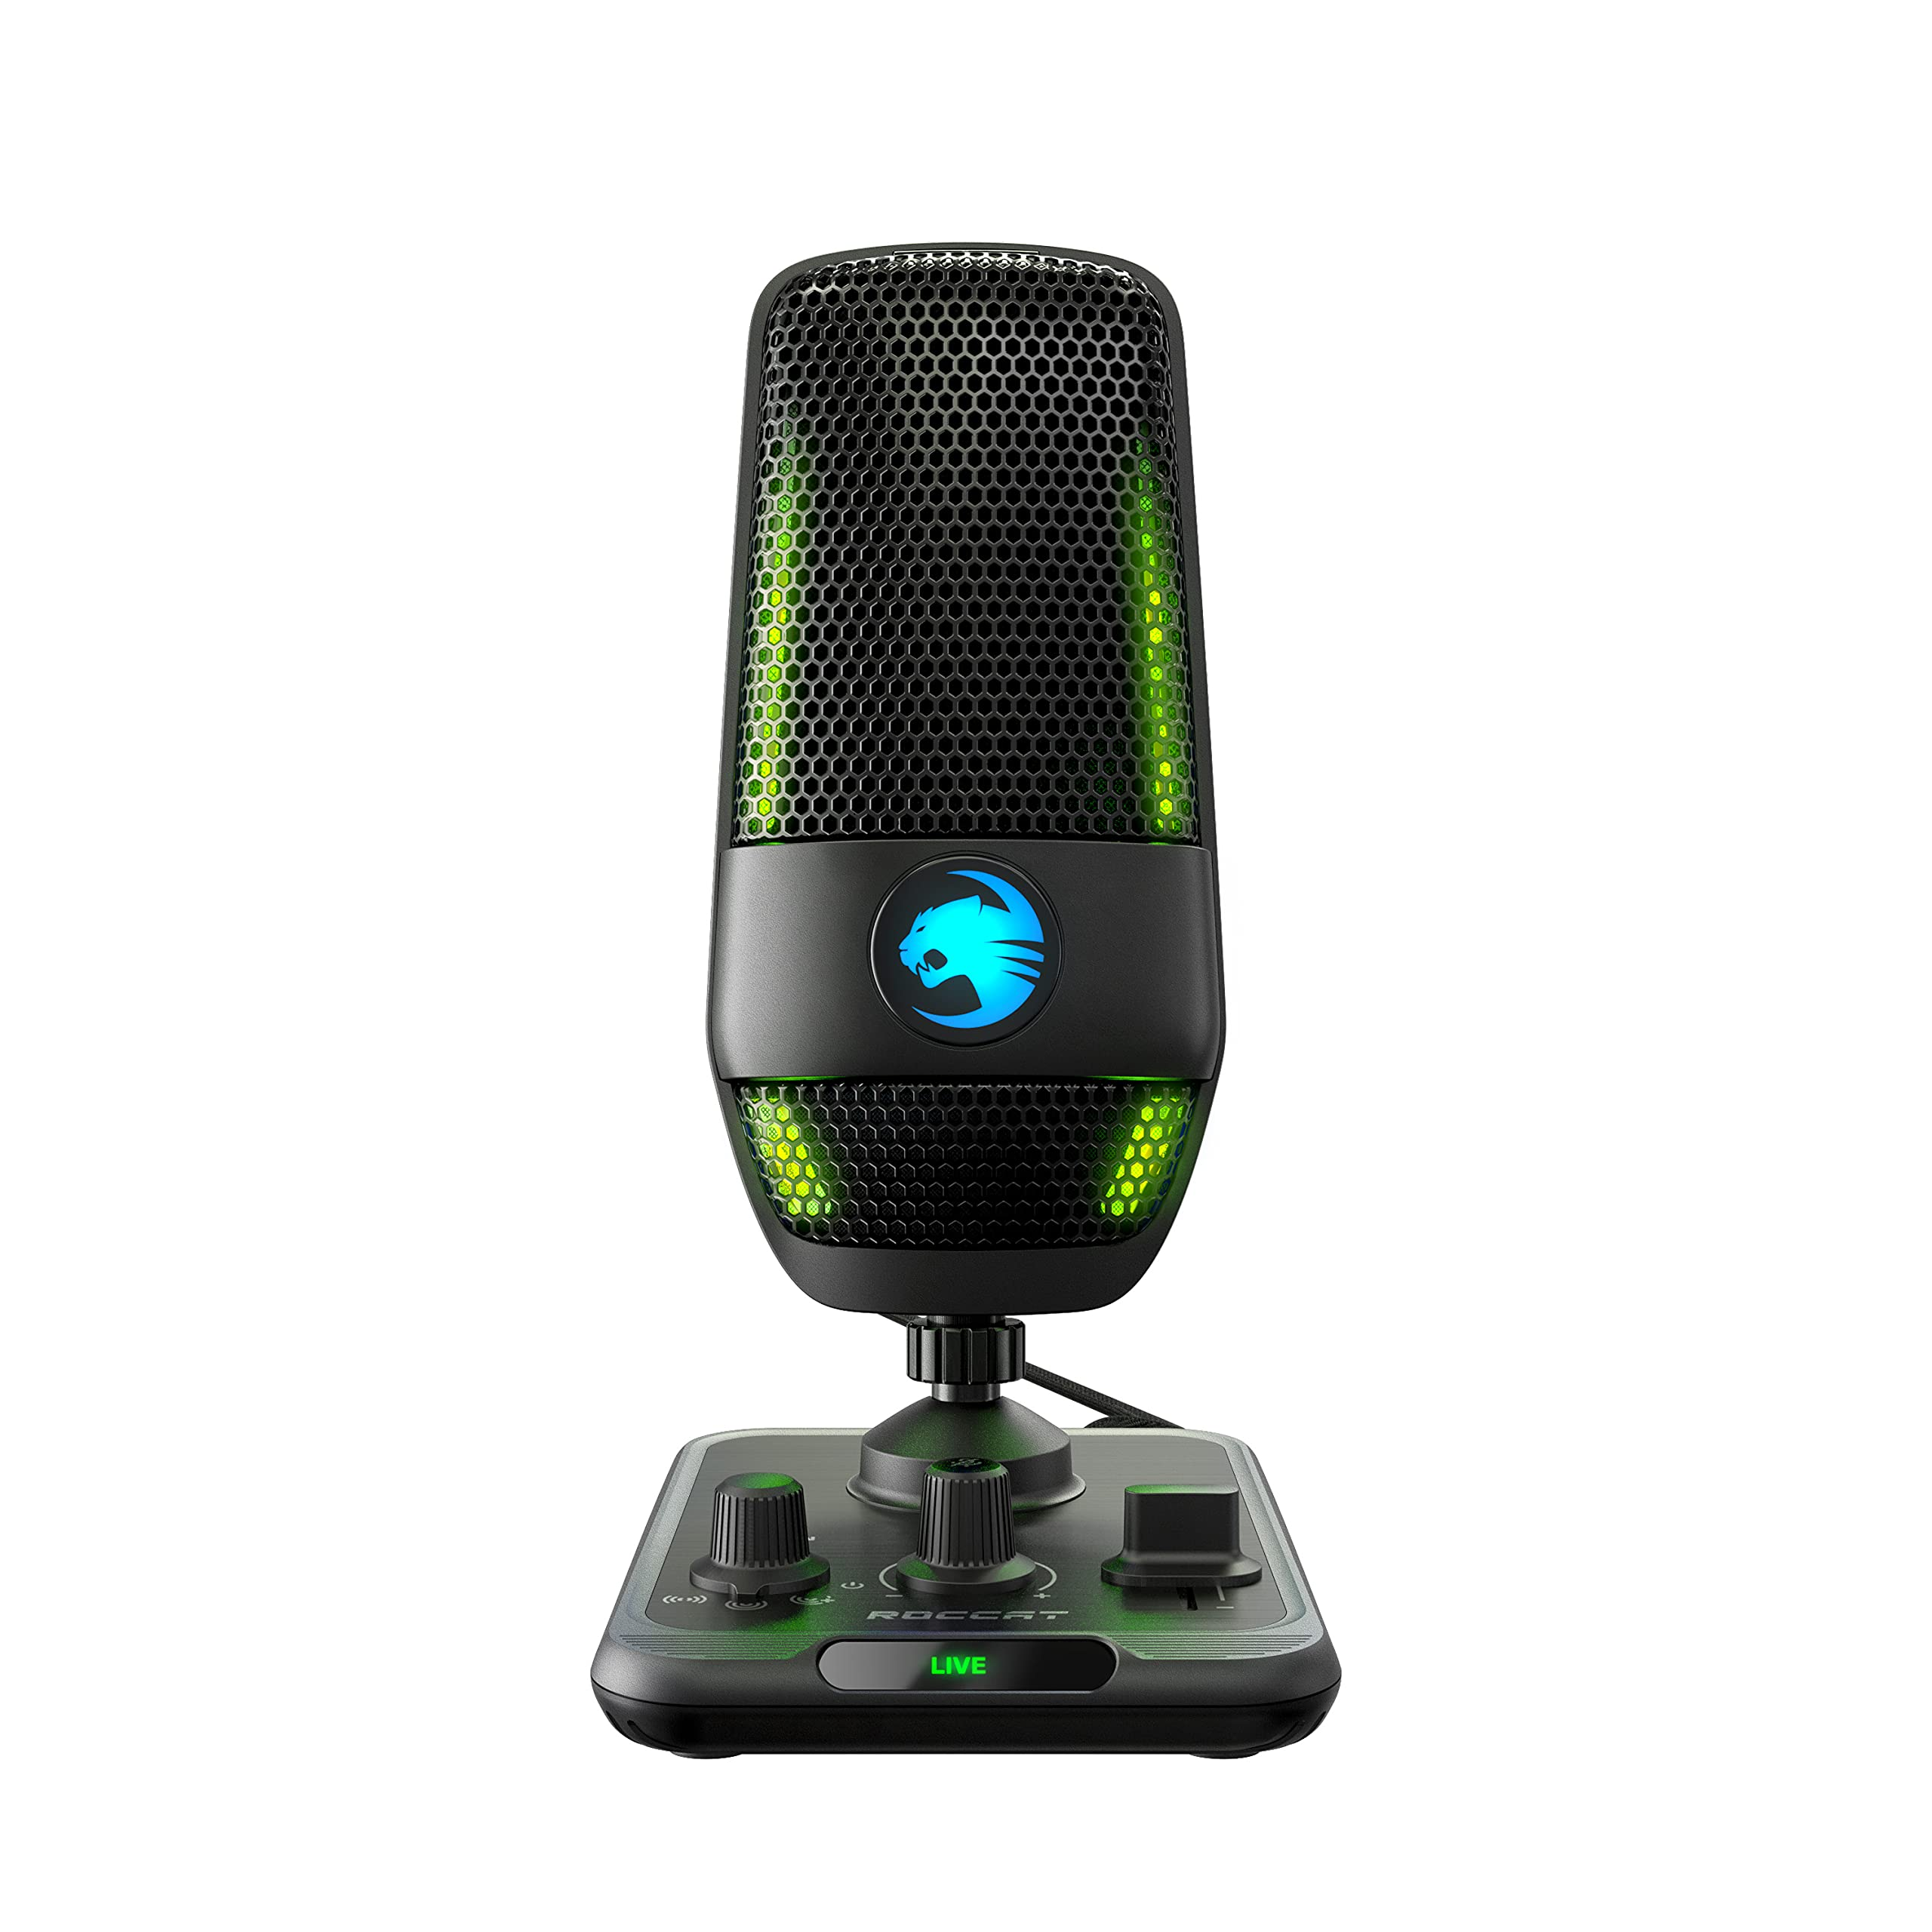 Poster. Roccat Torch USB Microphone